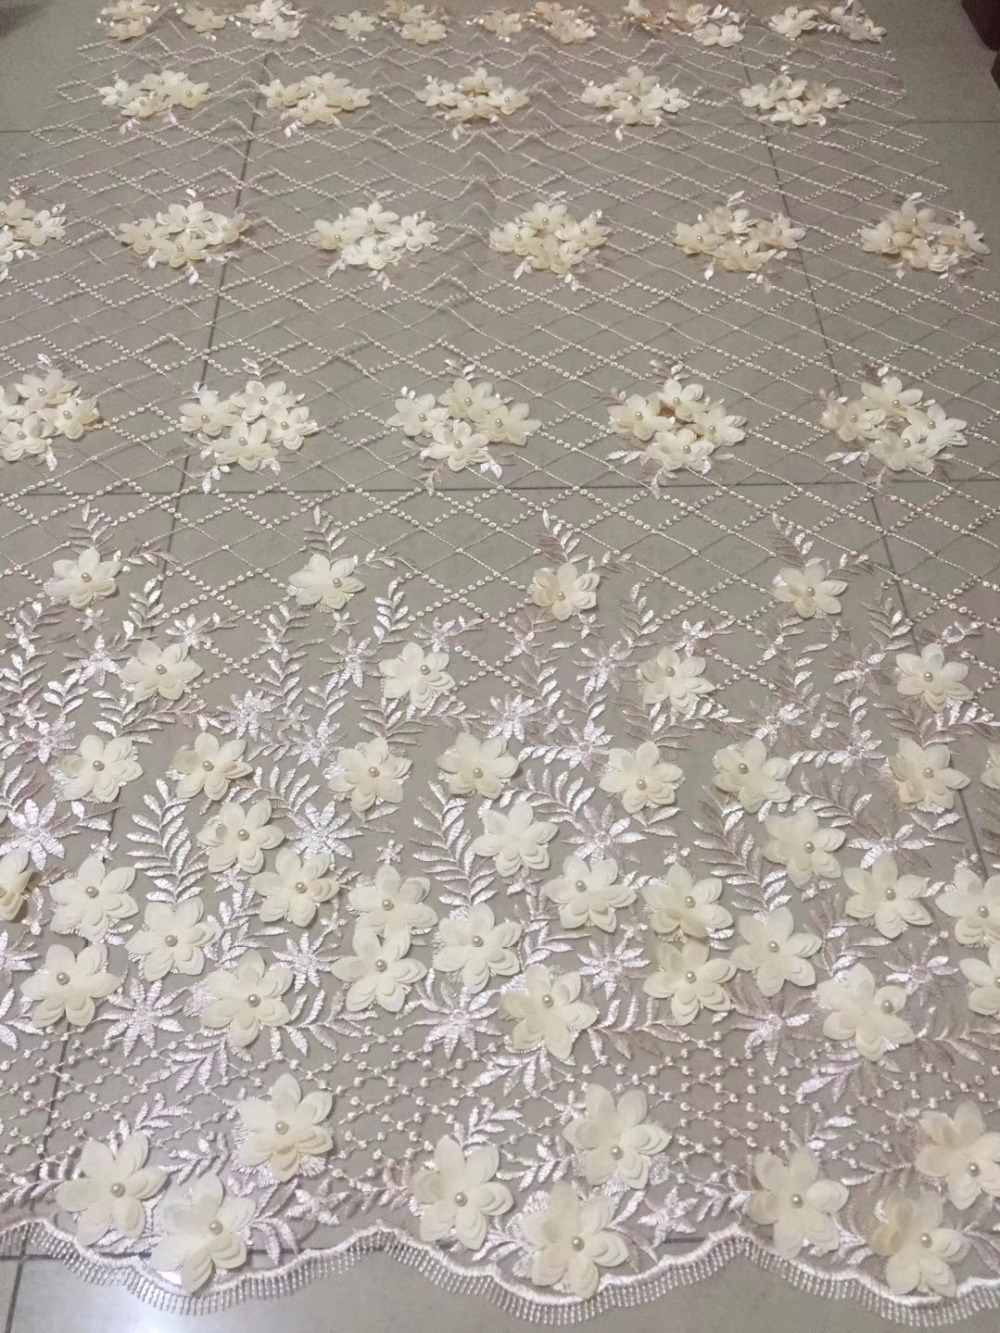 3d applique french lace high quality for african dress embroidery tulle fabric wholesale 5yard/lot3d applique french lace high quality for african dress embroidery tulle fabric wholesale 5yard/lot